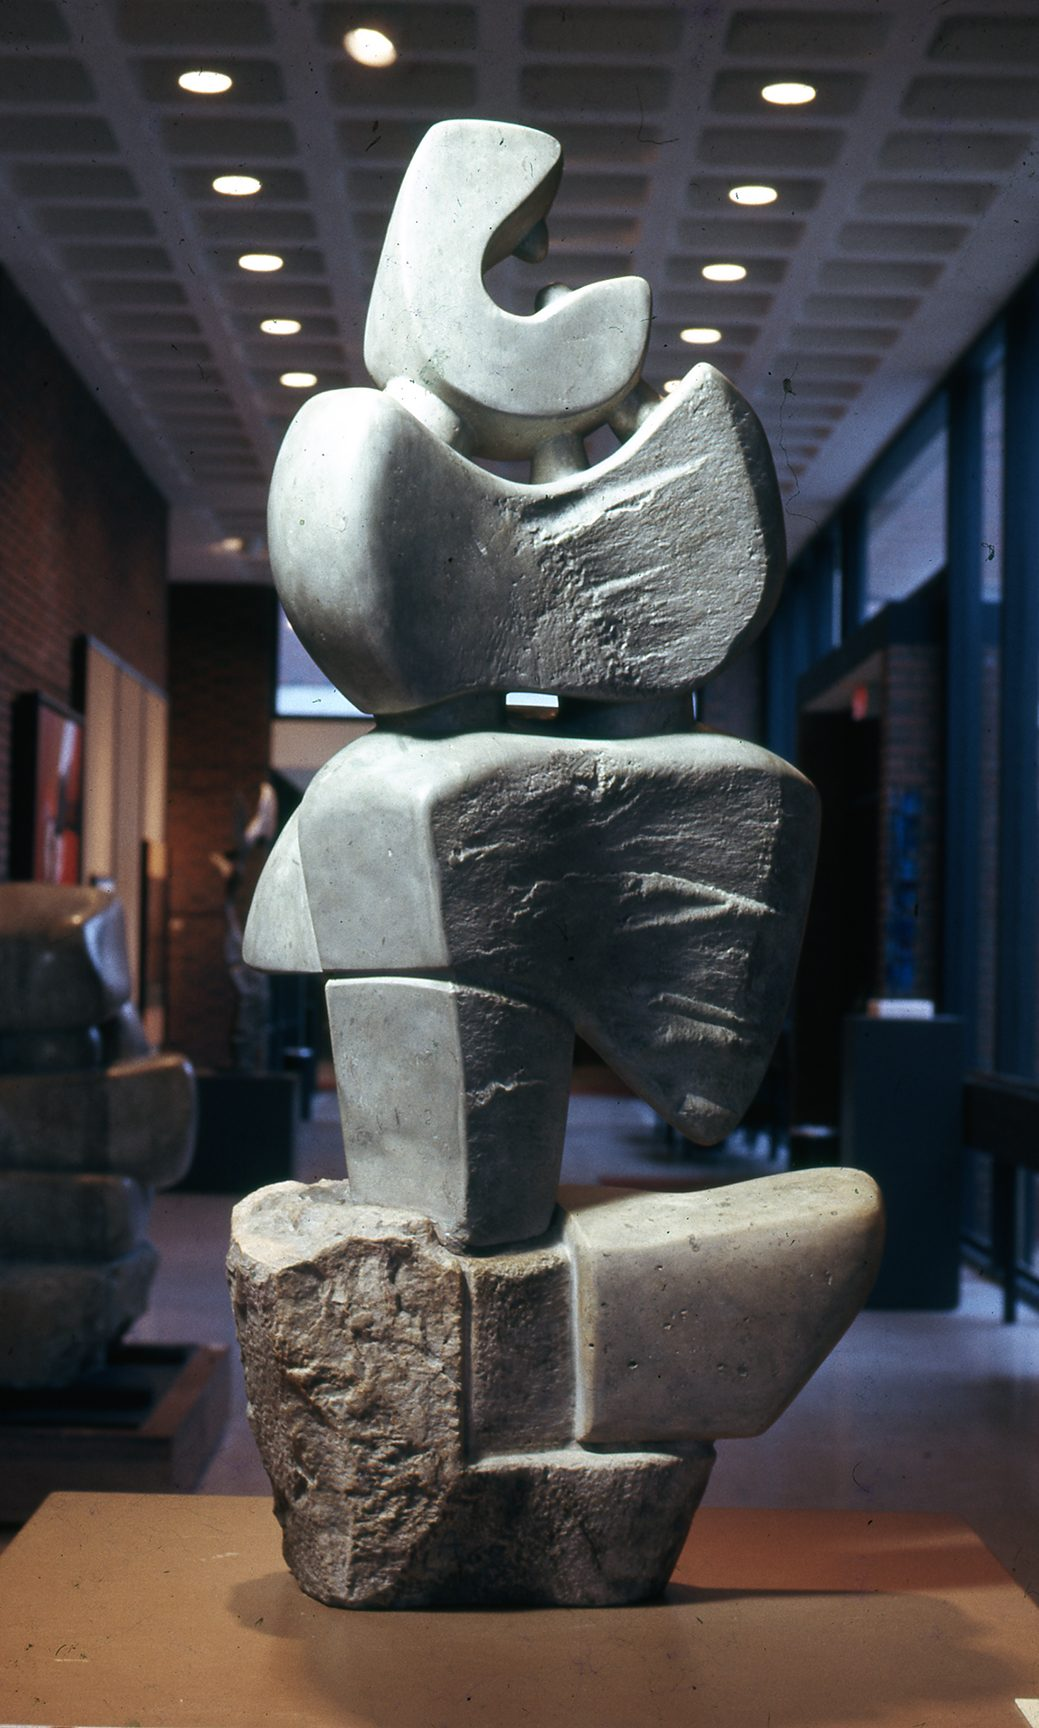 A smooth gray stone carved to look like stacked abstract shapes